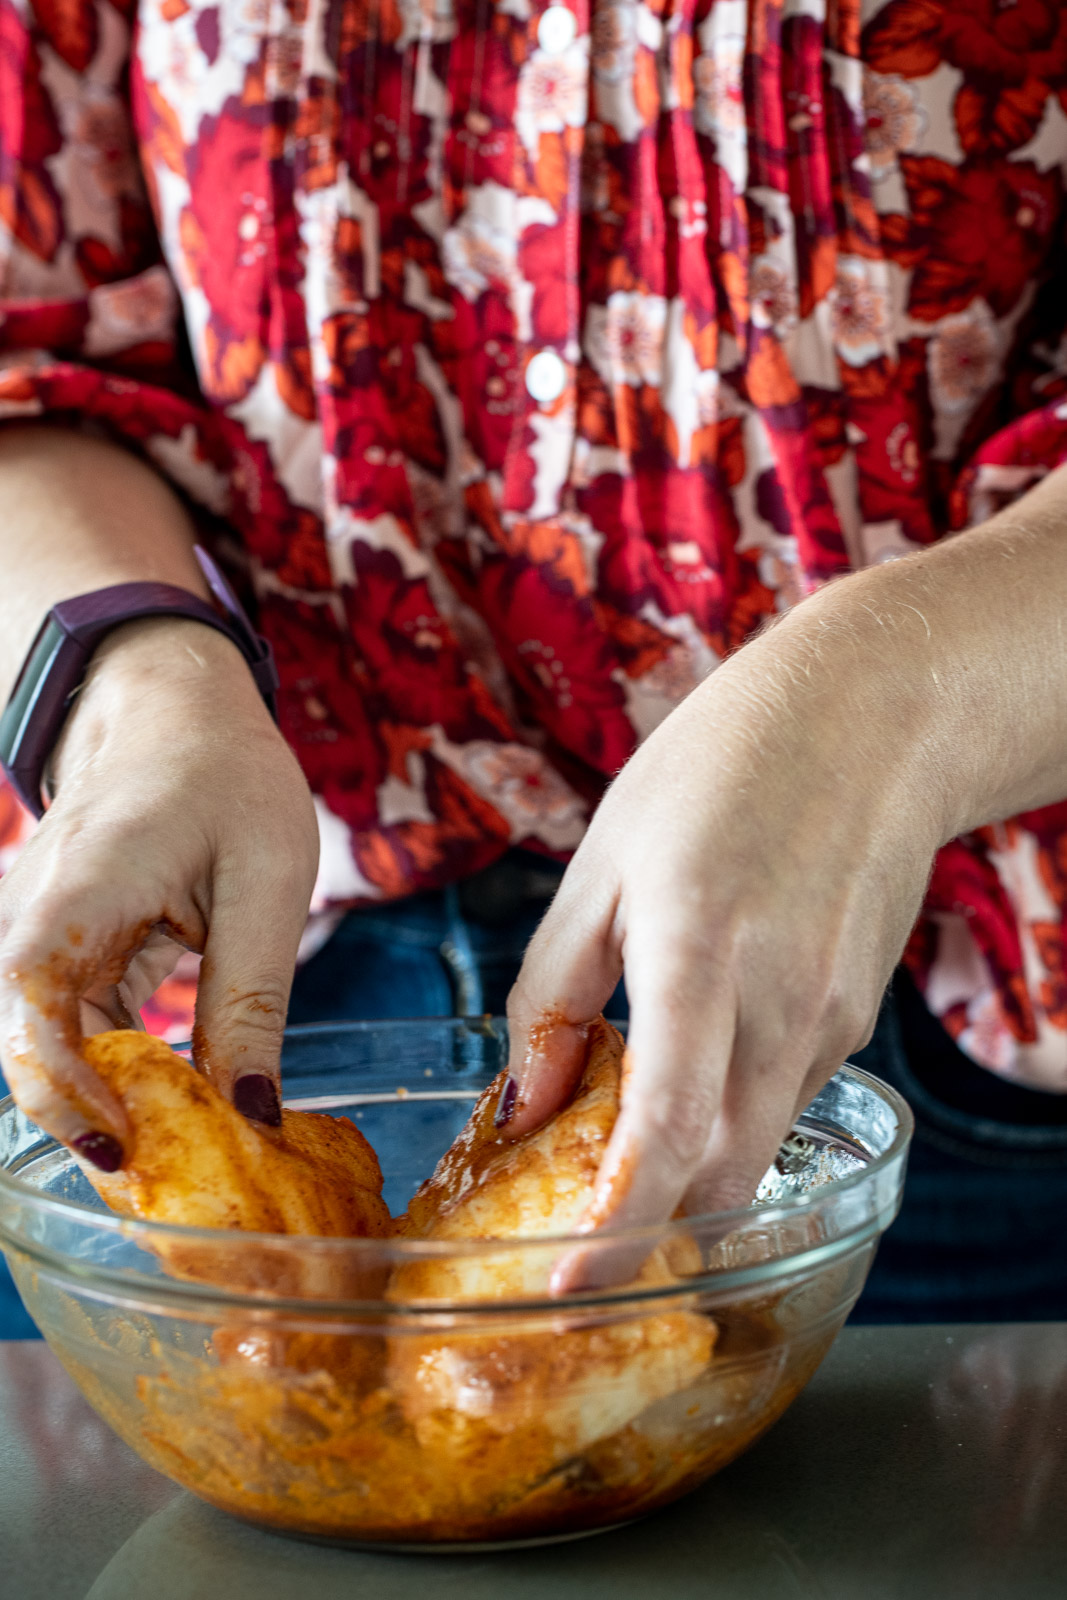 Woman mixing cod filets in a marinade.